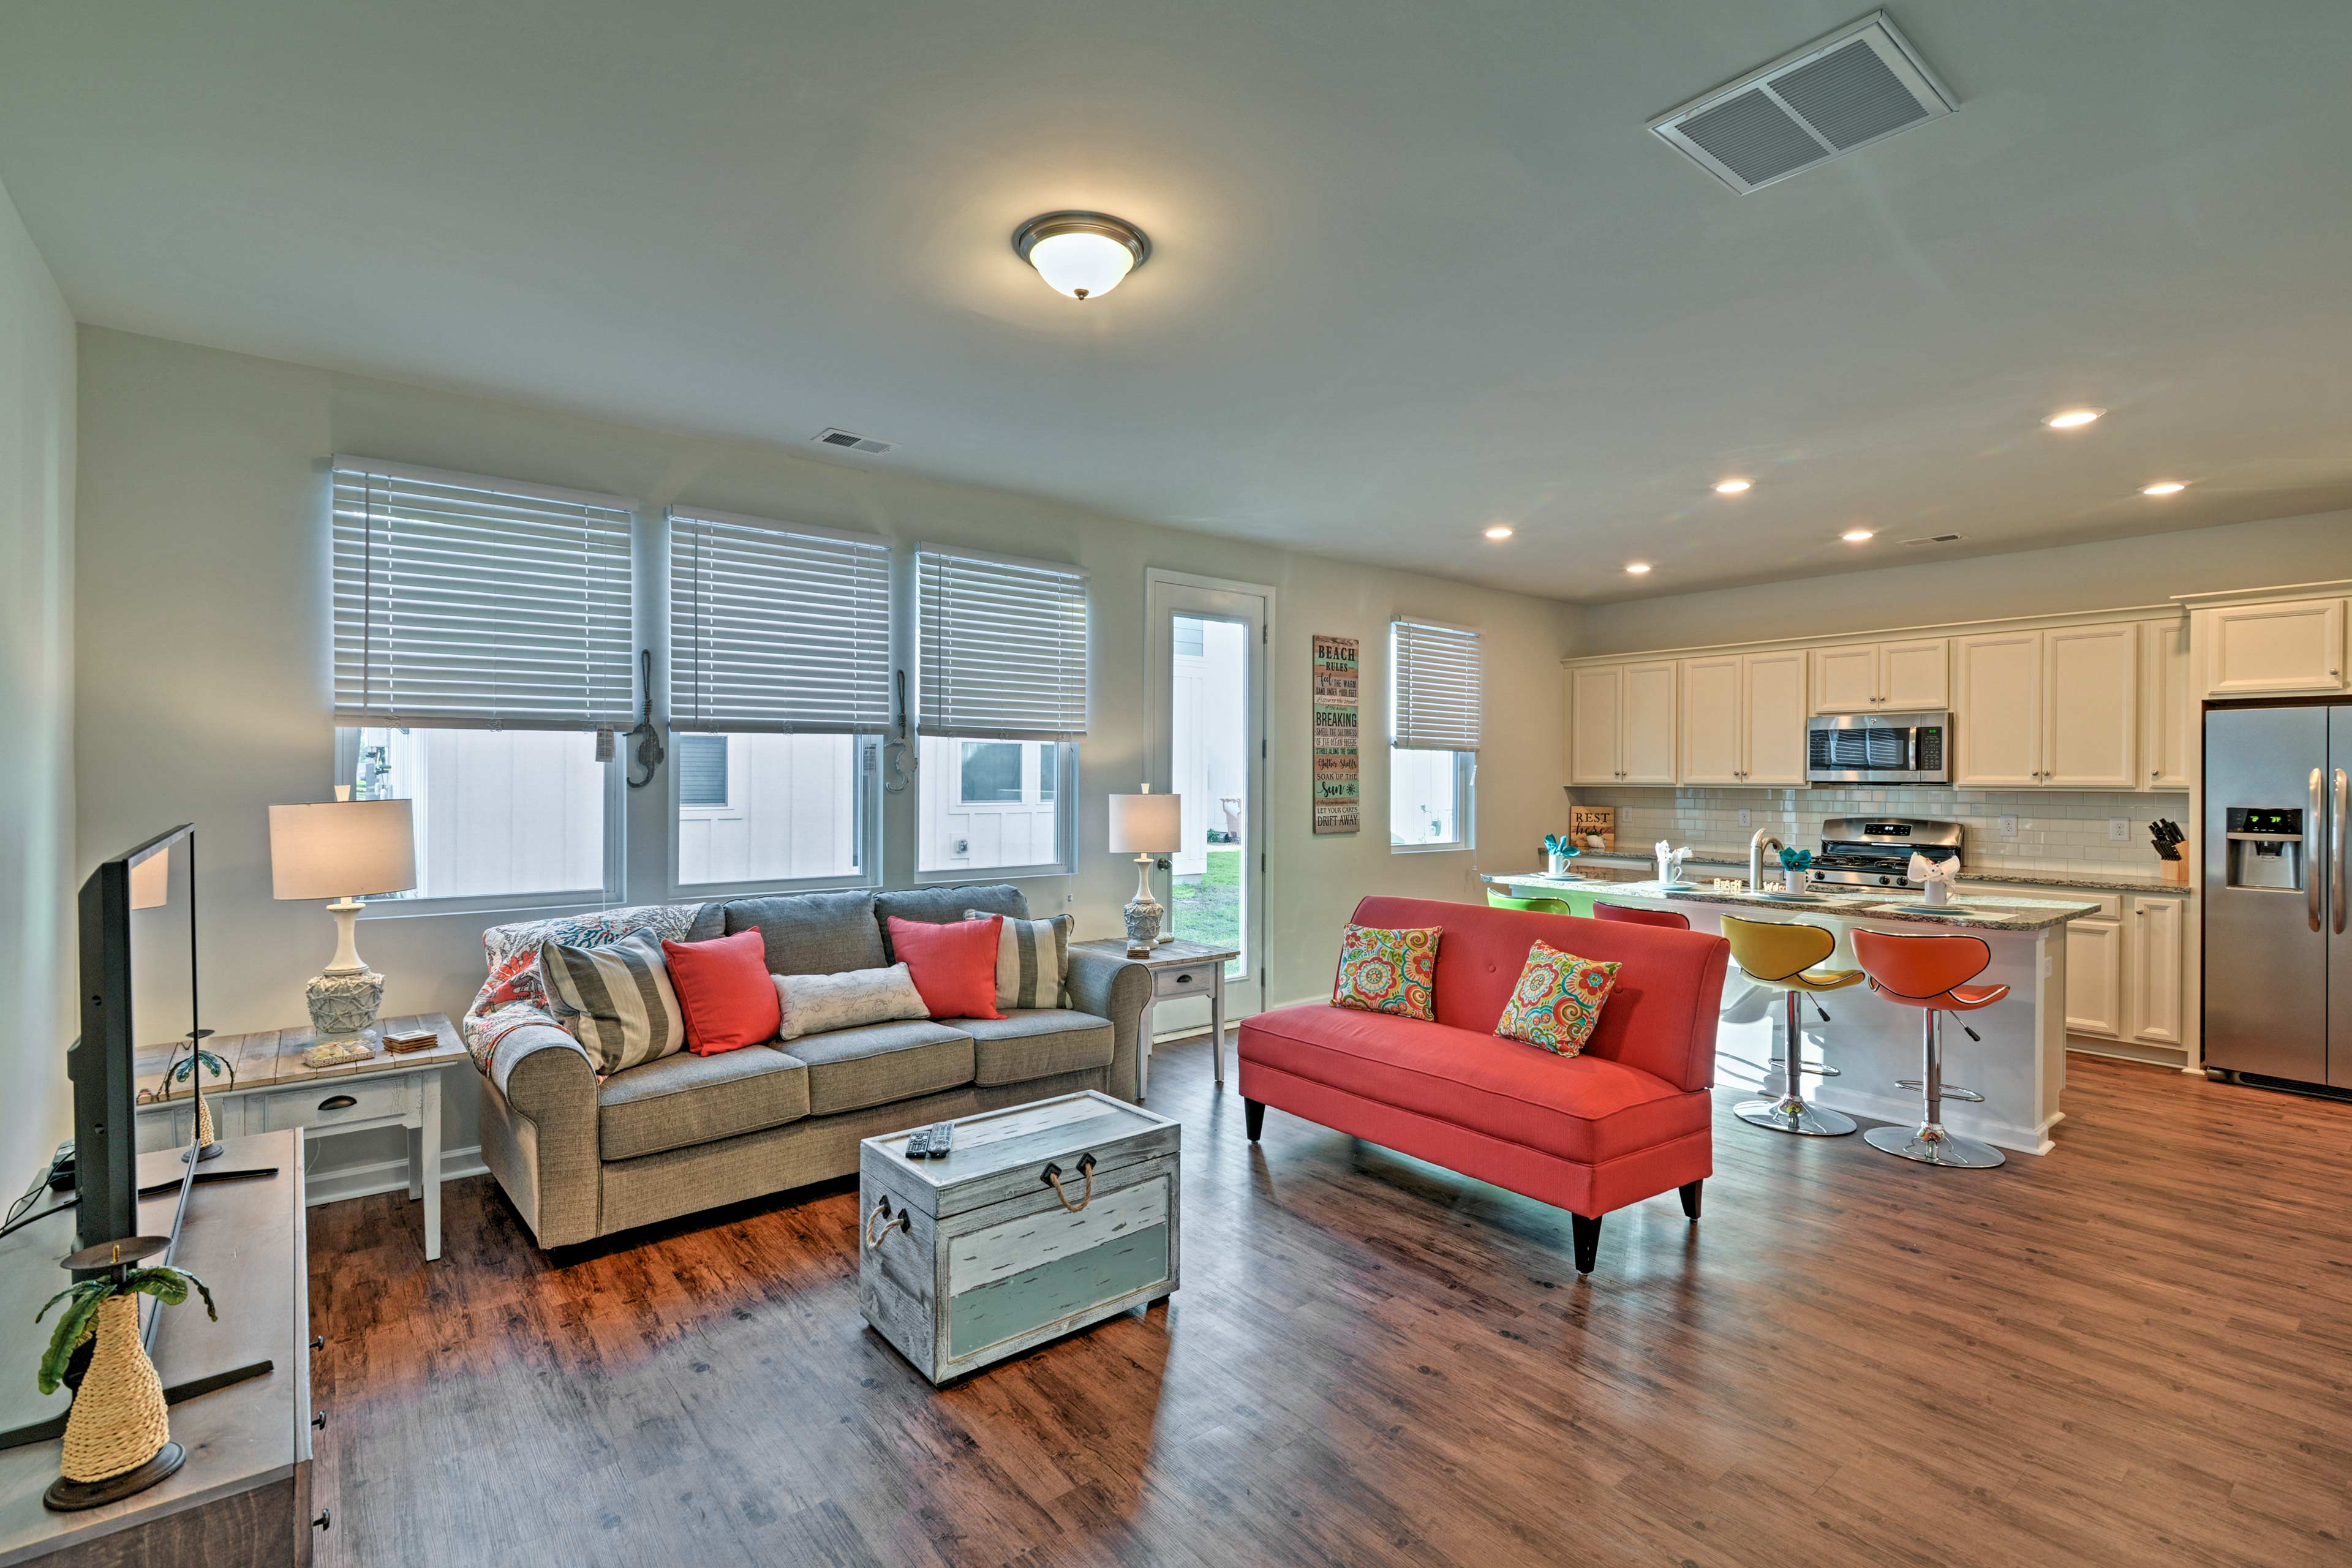 Live like a local at this vacation rental house in Myrtle Beach!